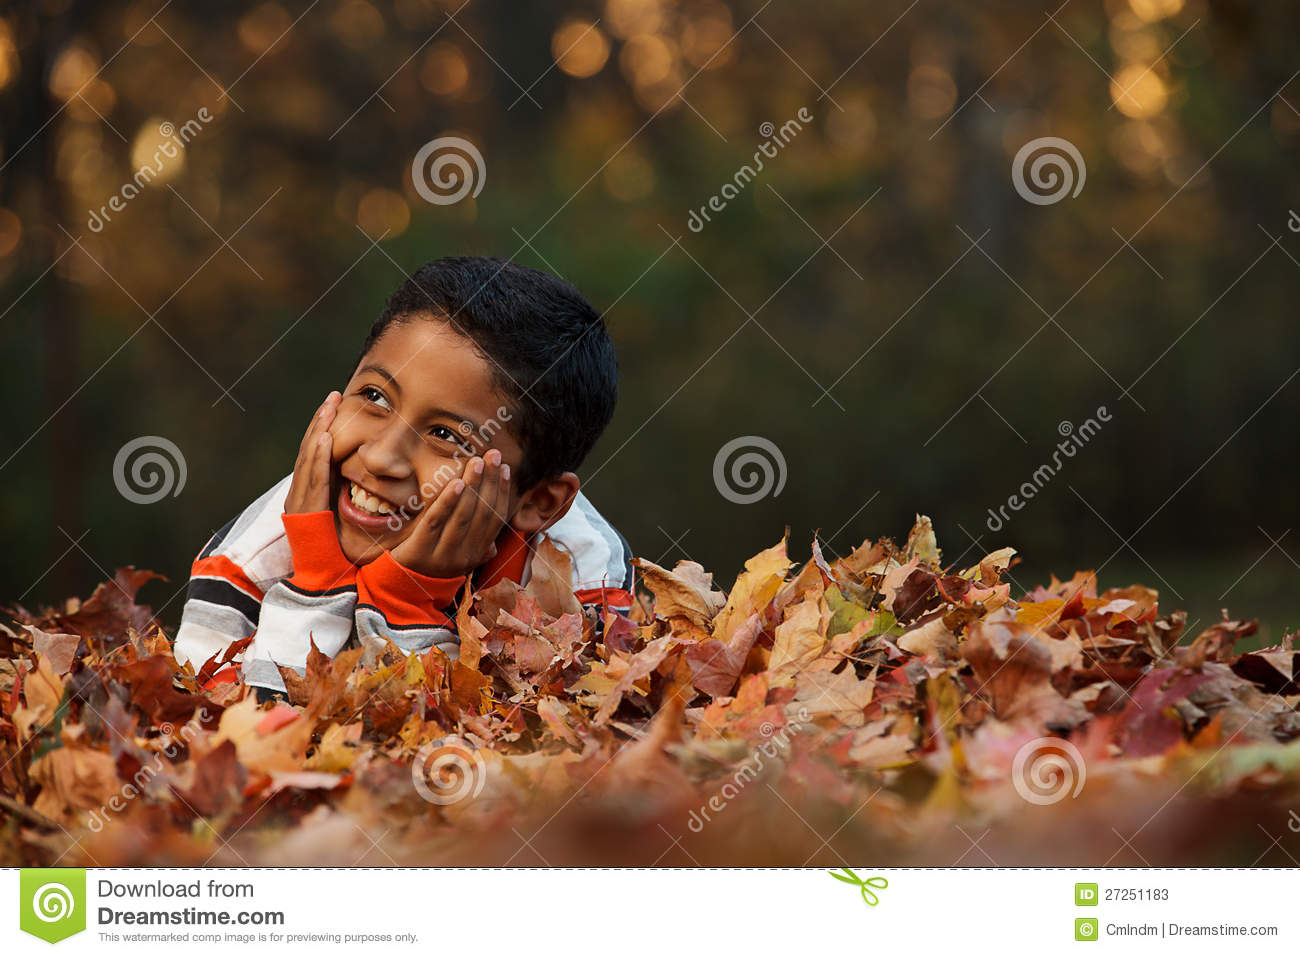 Child Laying on Autumn Leafs